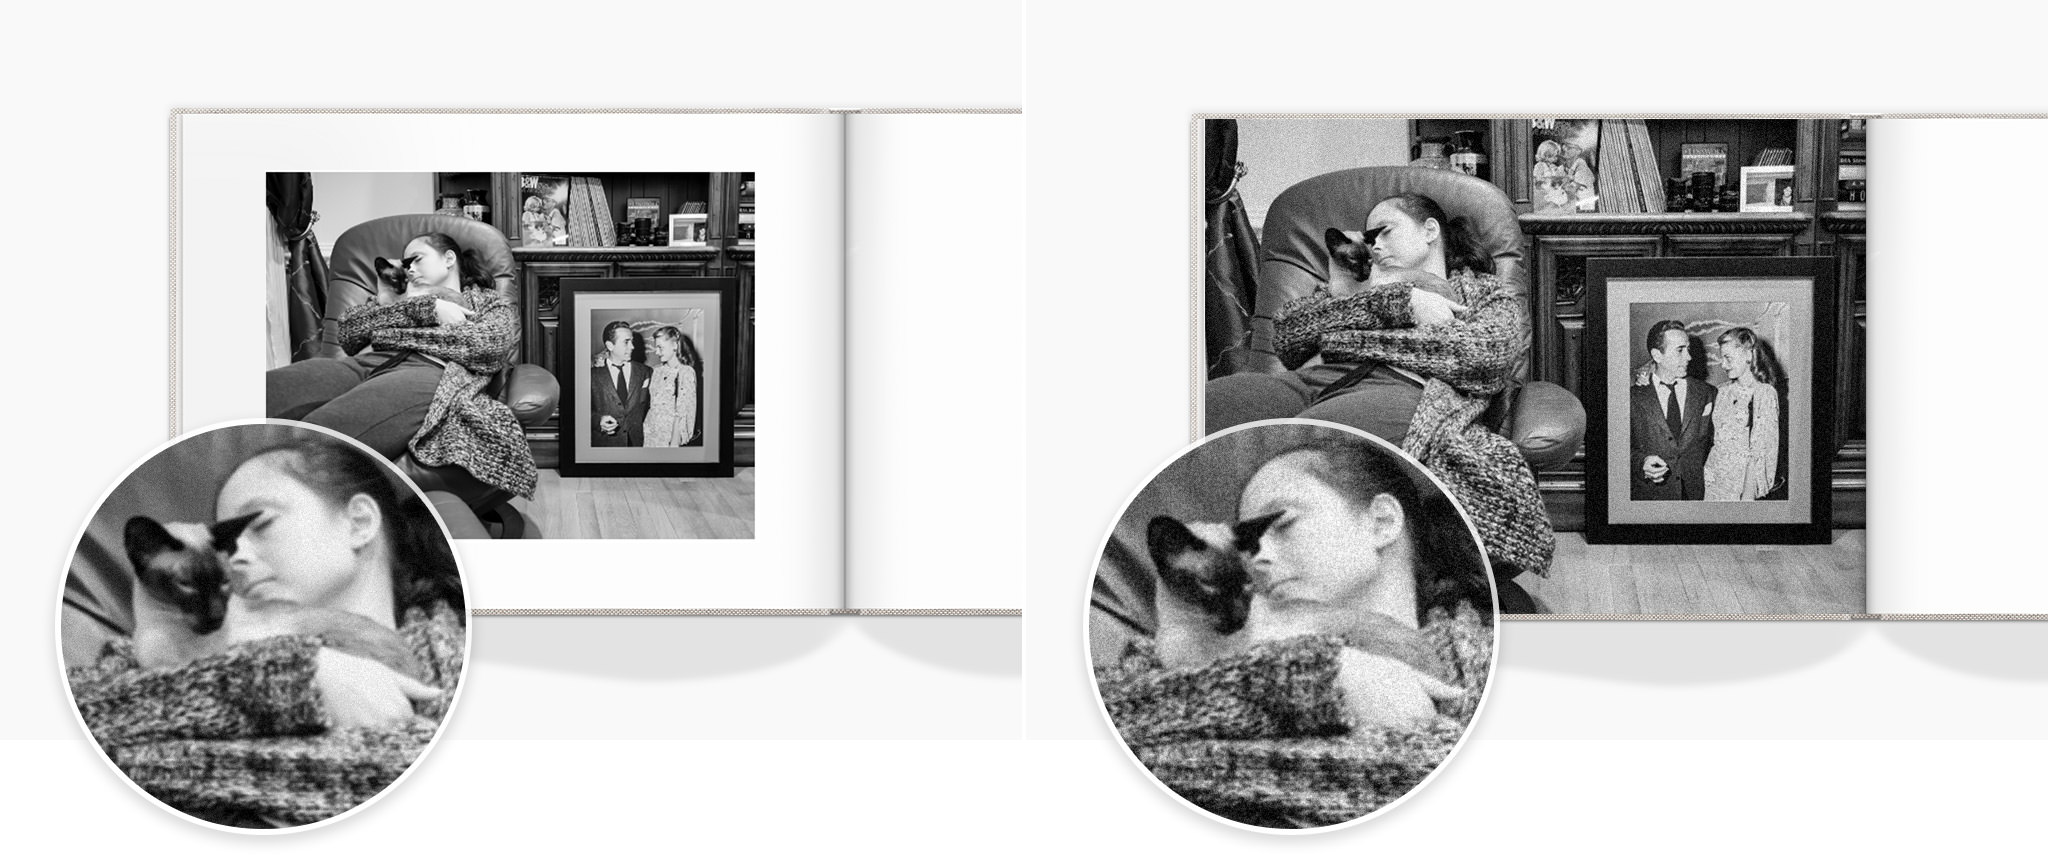 Two photo books open with a black and white image of a lady holding her cat on an armchair in her house.